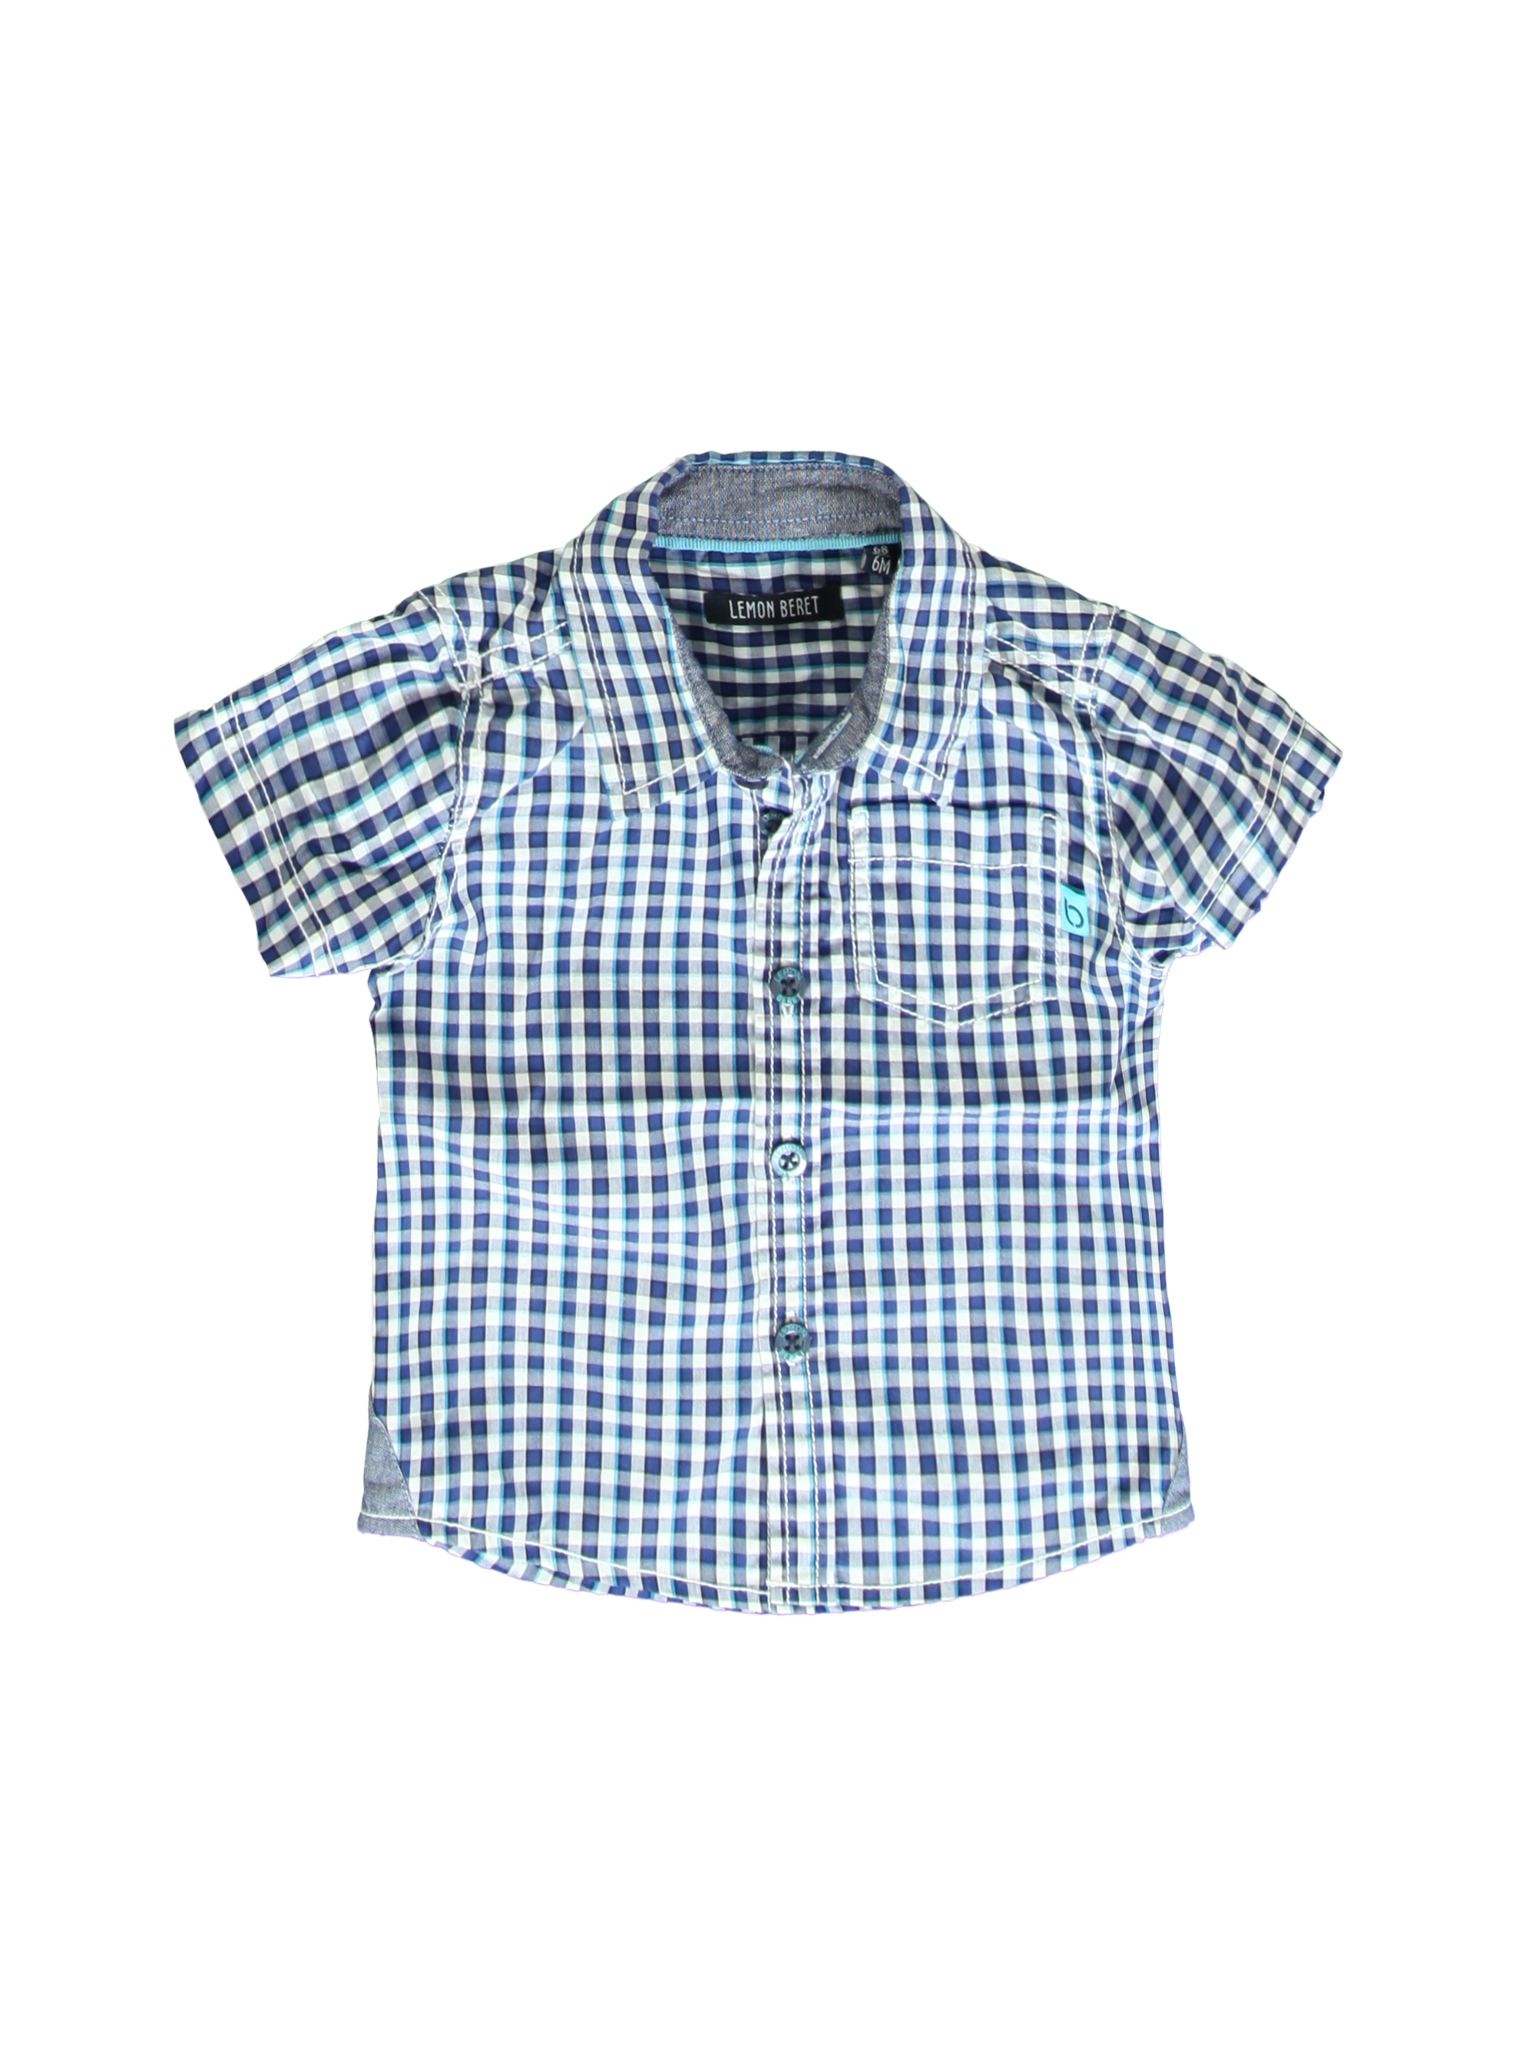 All Brands | Summerproducts Baby | Shirt | 8 pcs/box